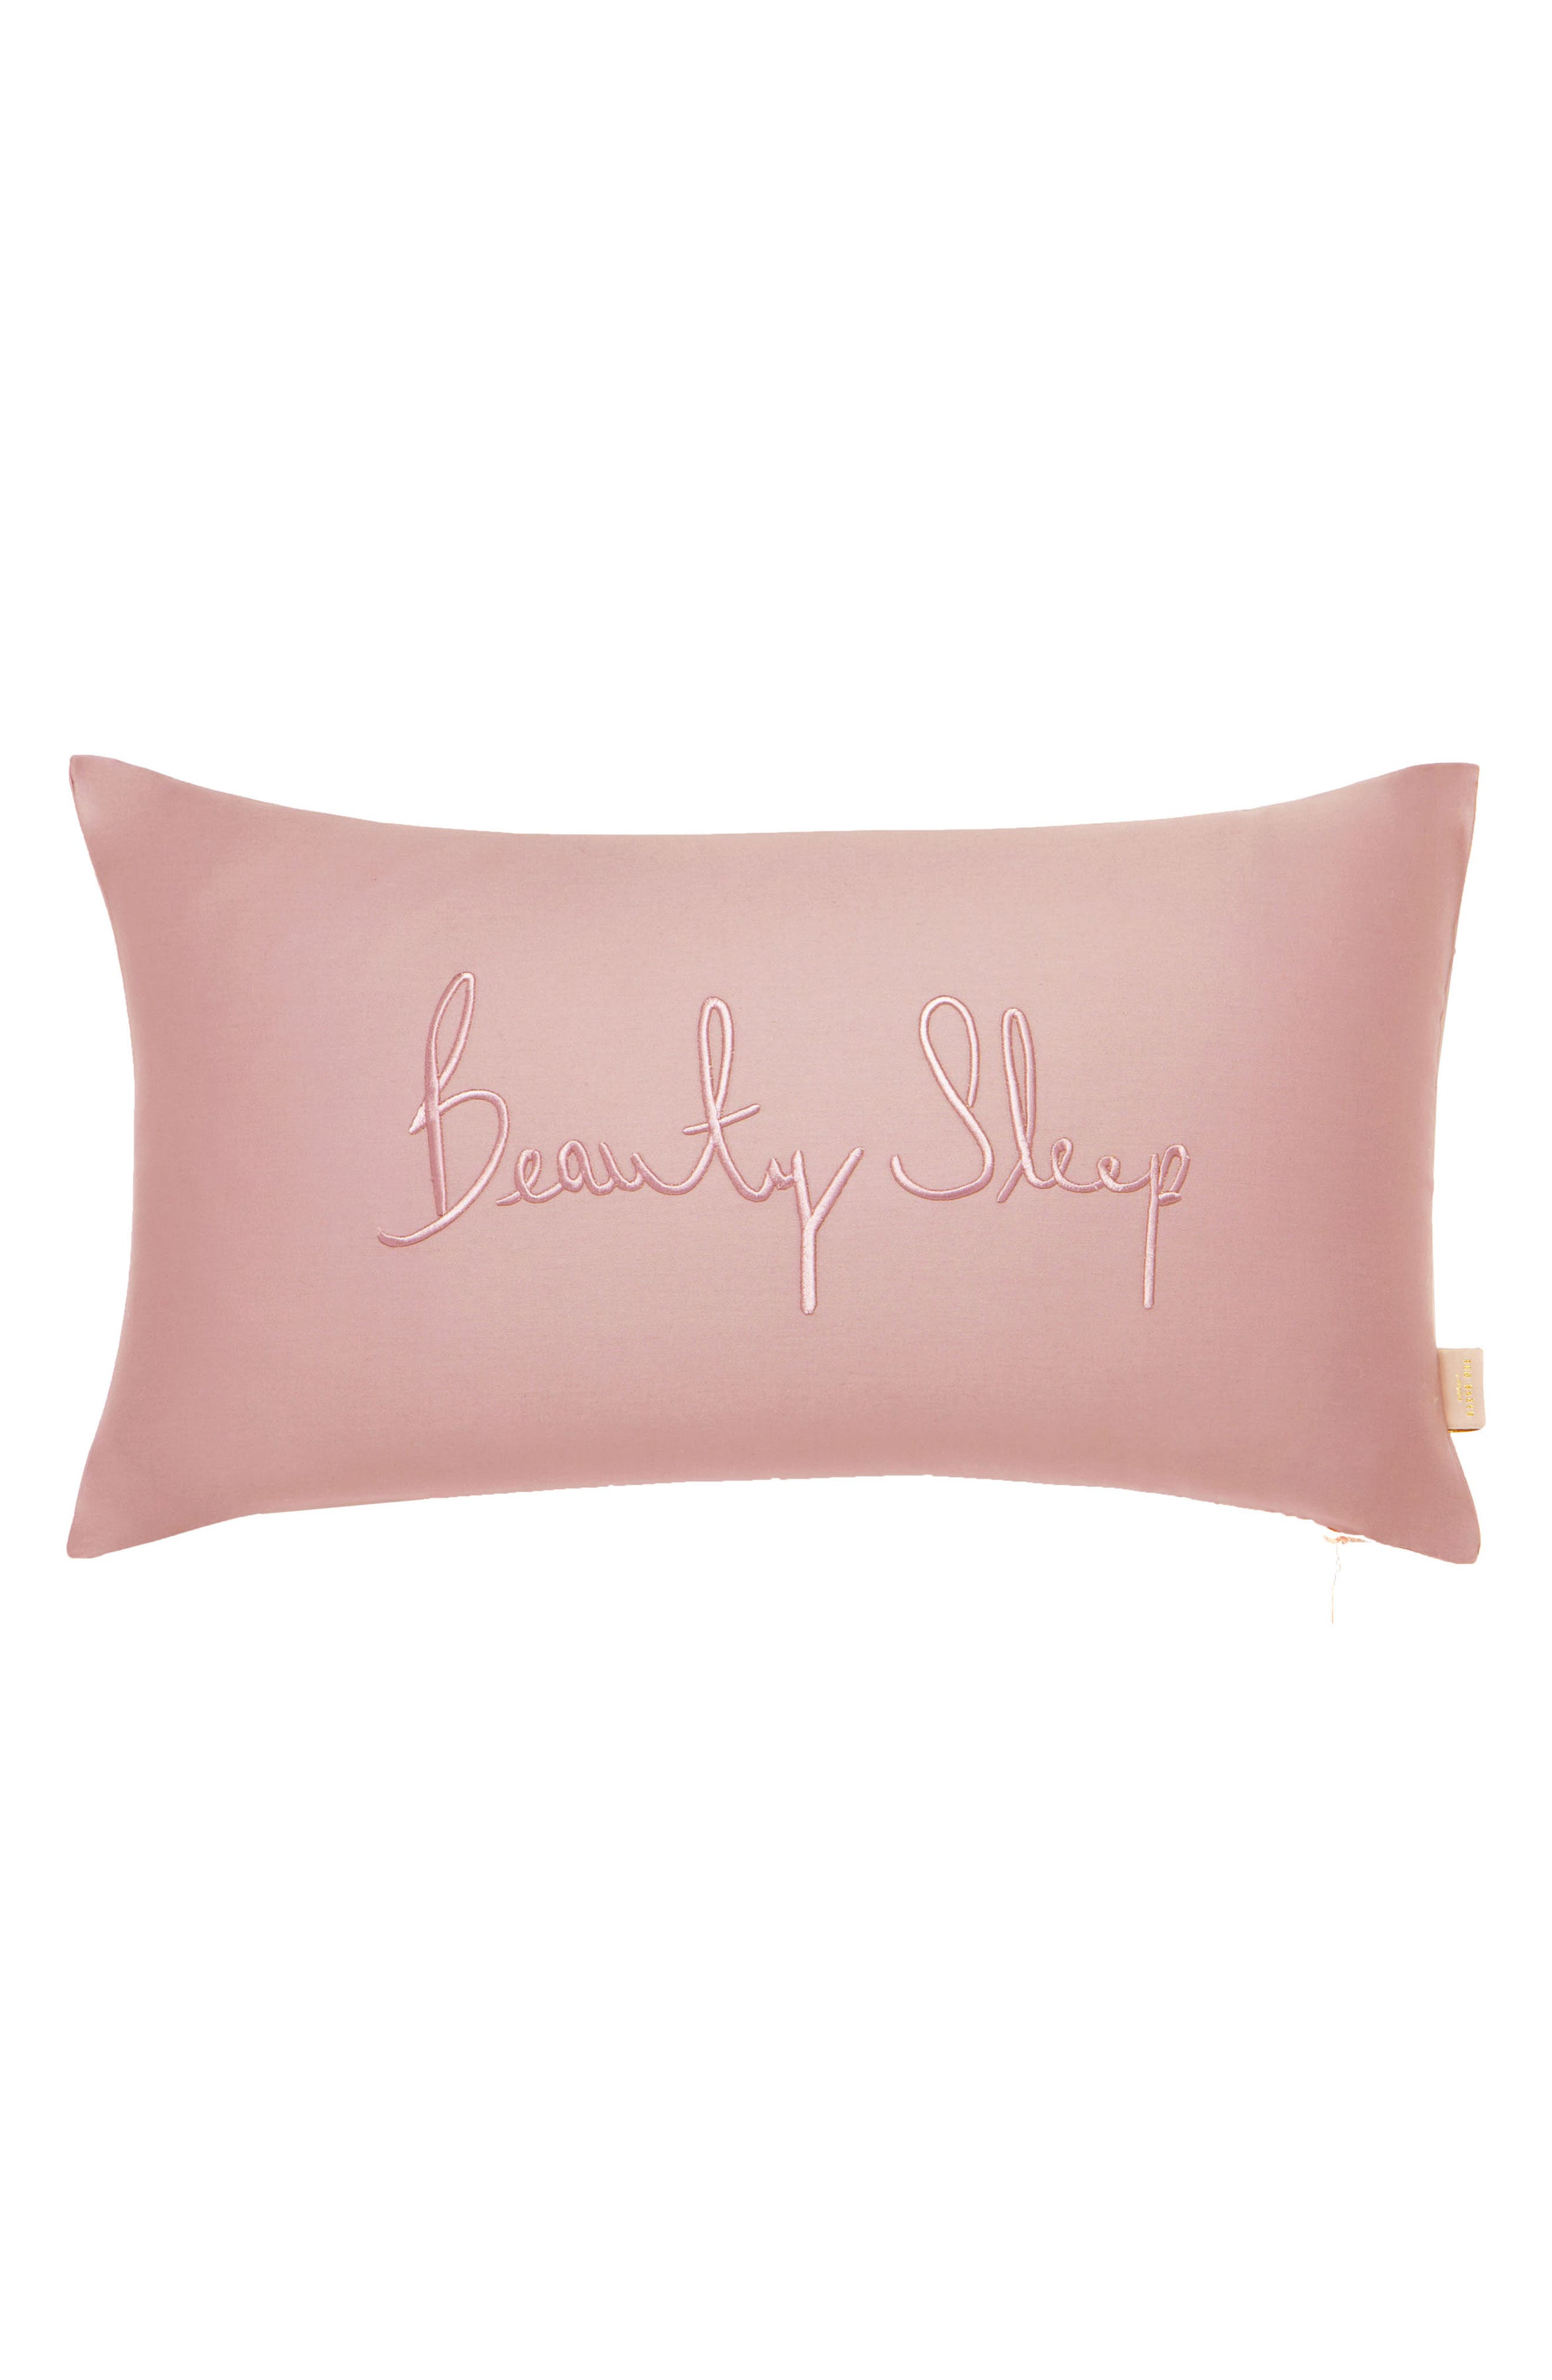 TED BAKER LONDON Beauty Sleep Accent Pillows, Main, color, PINK